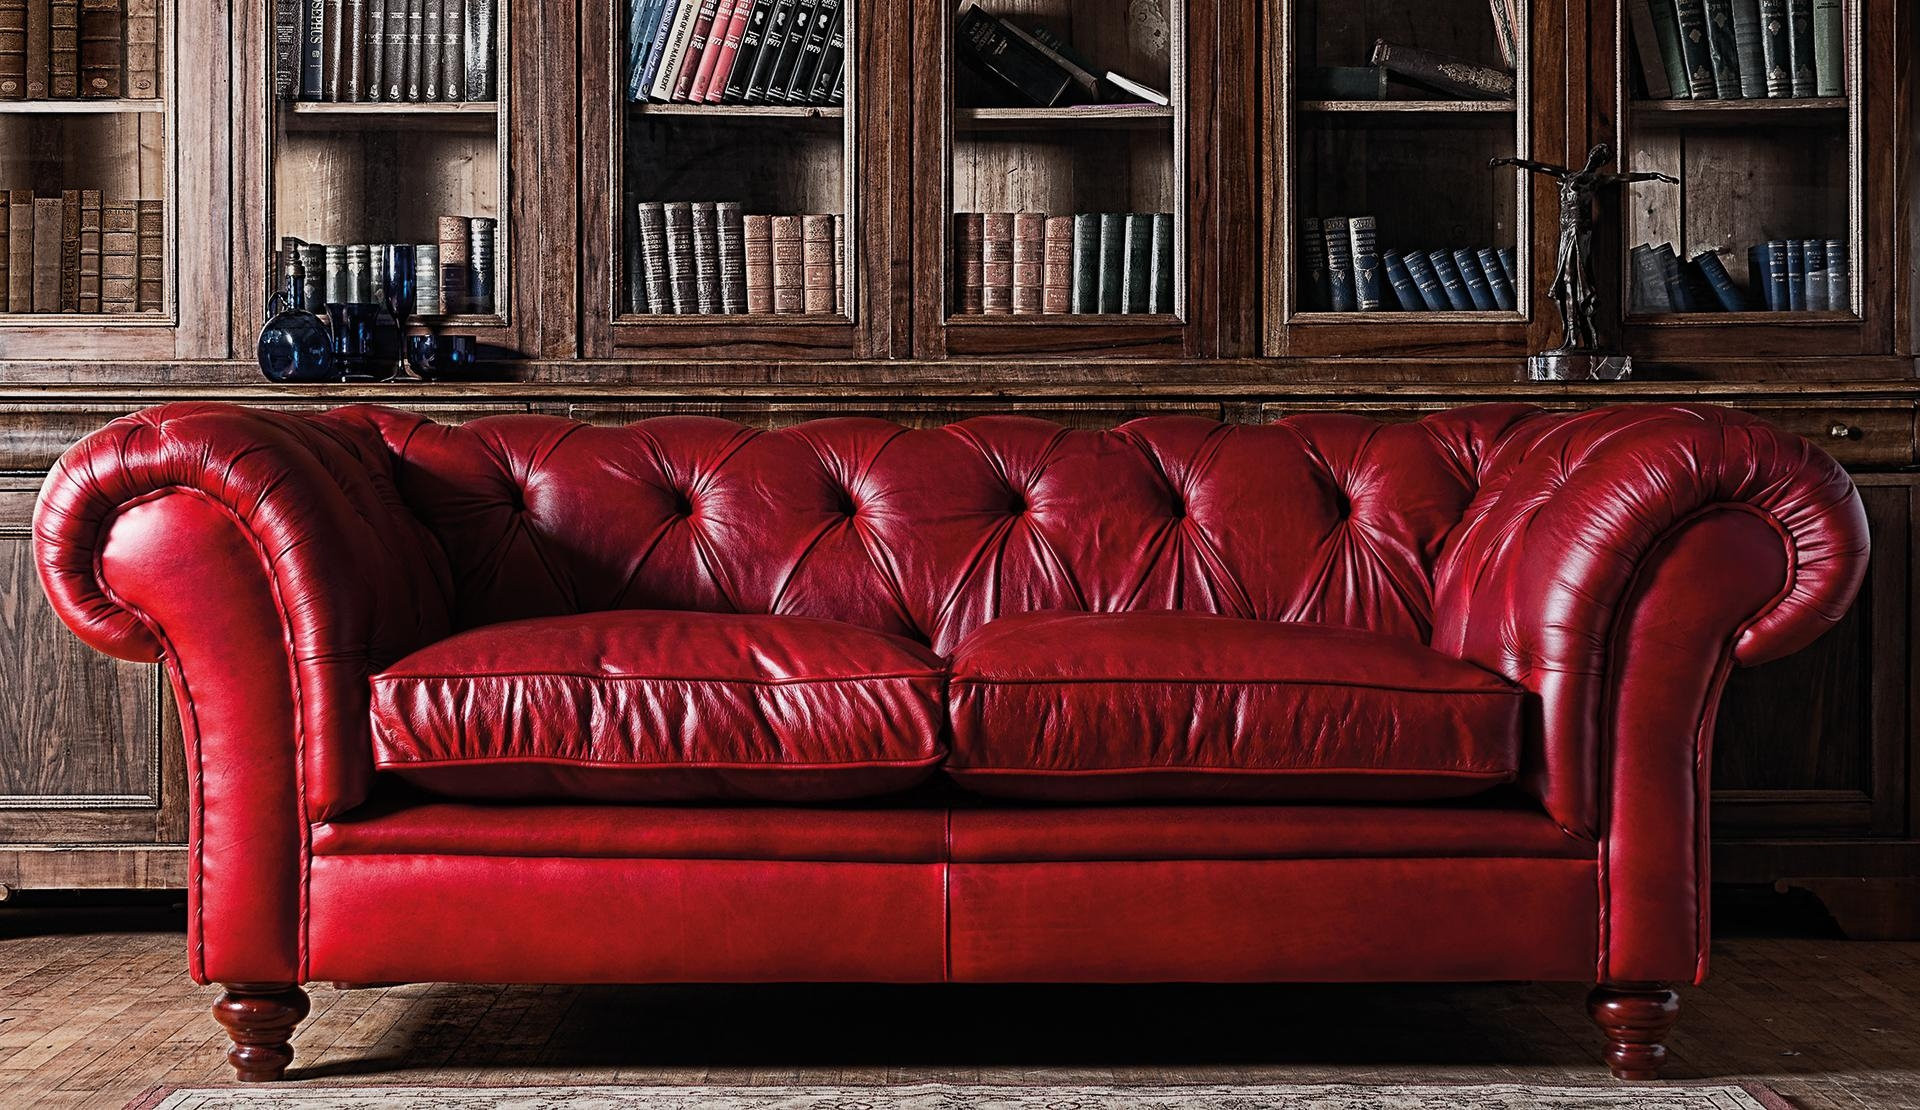 Red Leather Chesterfield Sofa | Sofa Gallery | Kengire In Red Chesterfield Sofas (Image 14 of 20)